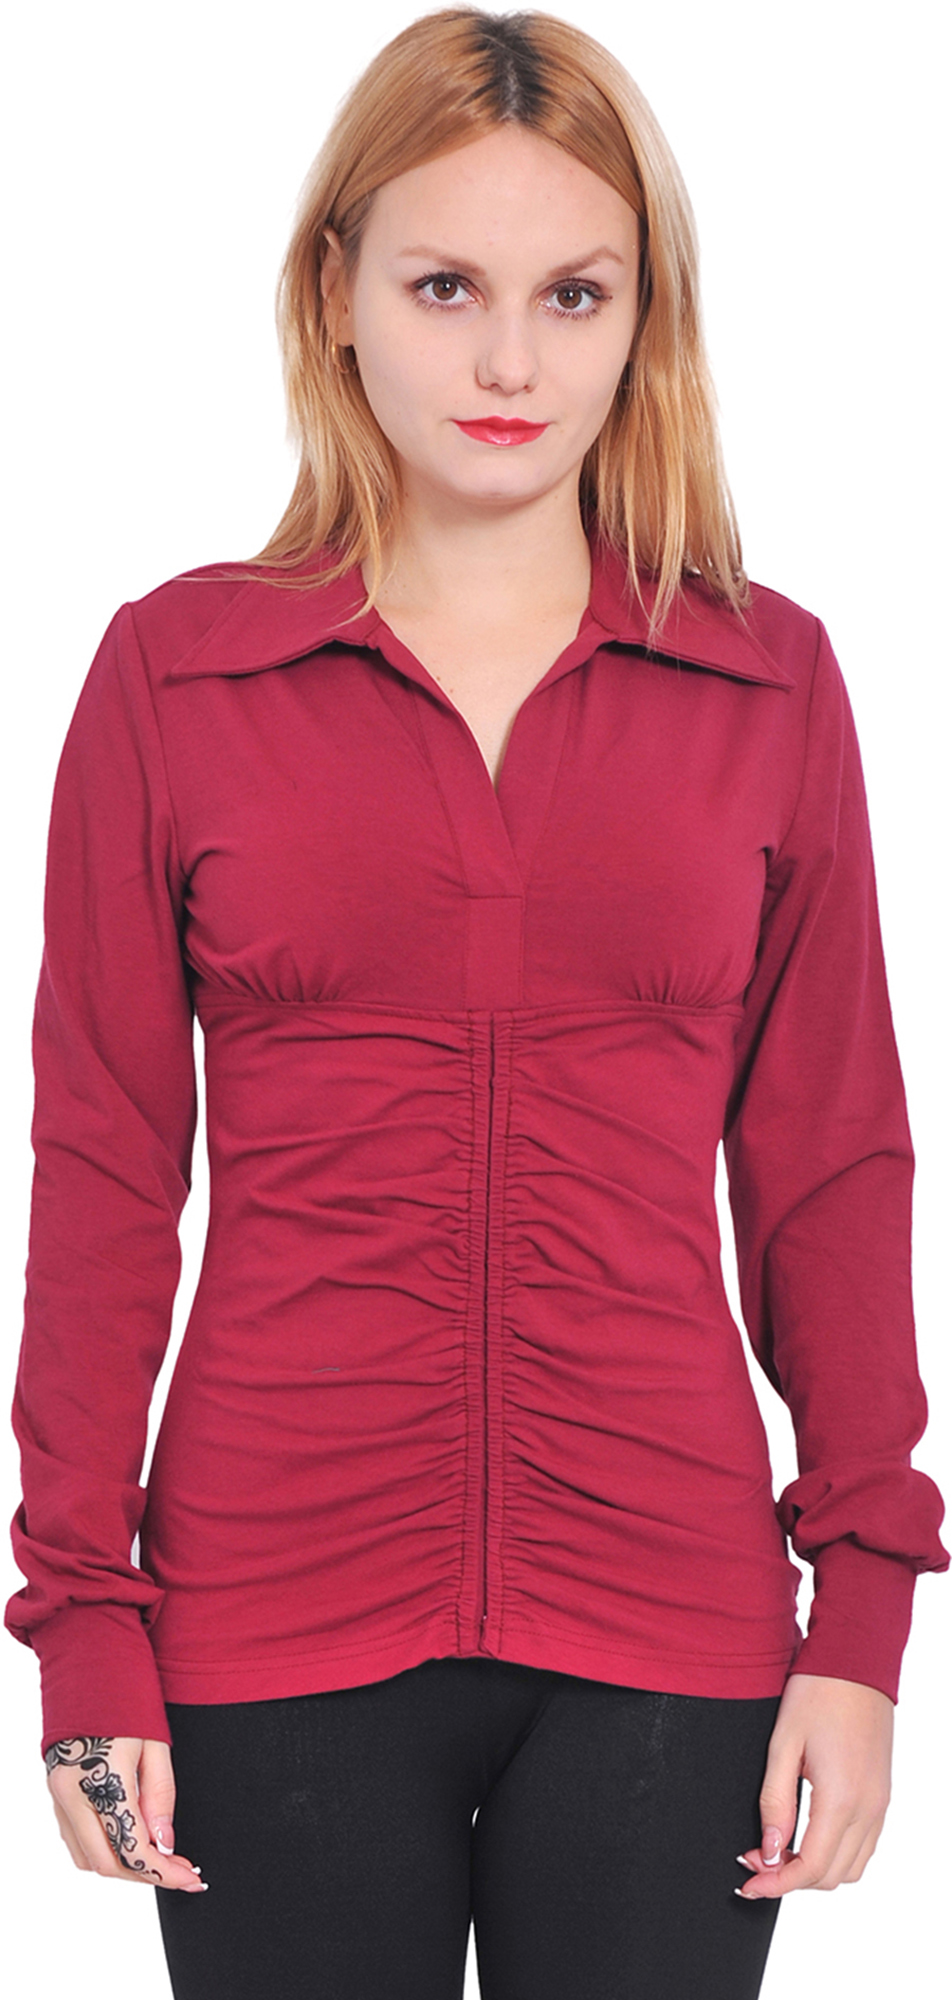 Marycrafts Womens Long Sleeve V Neck Collared Polo Shirt